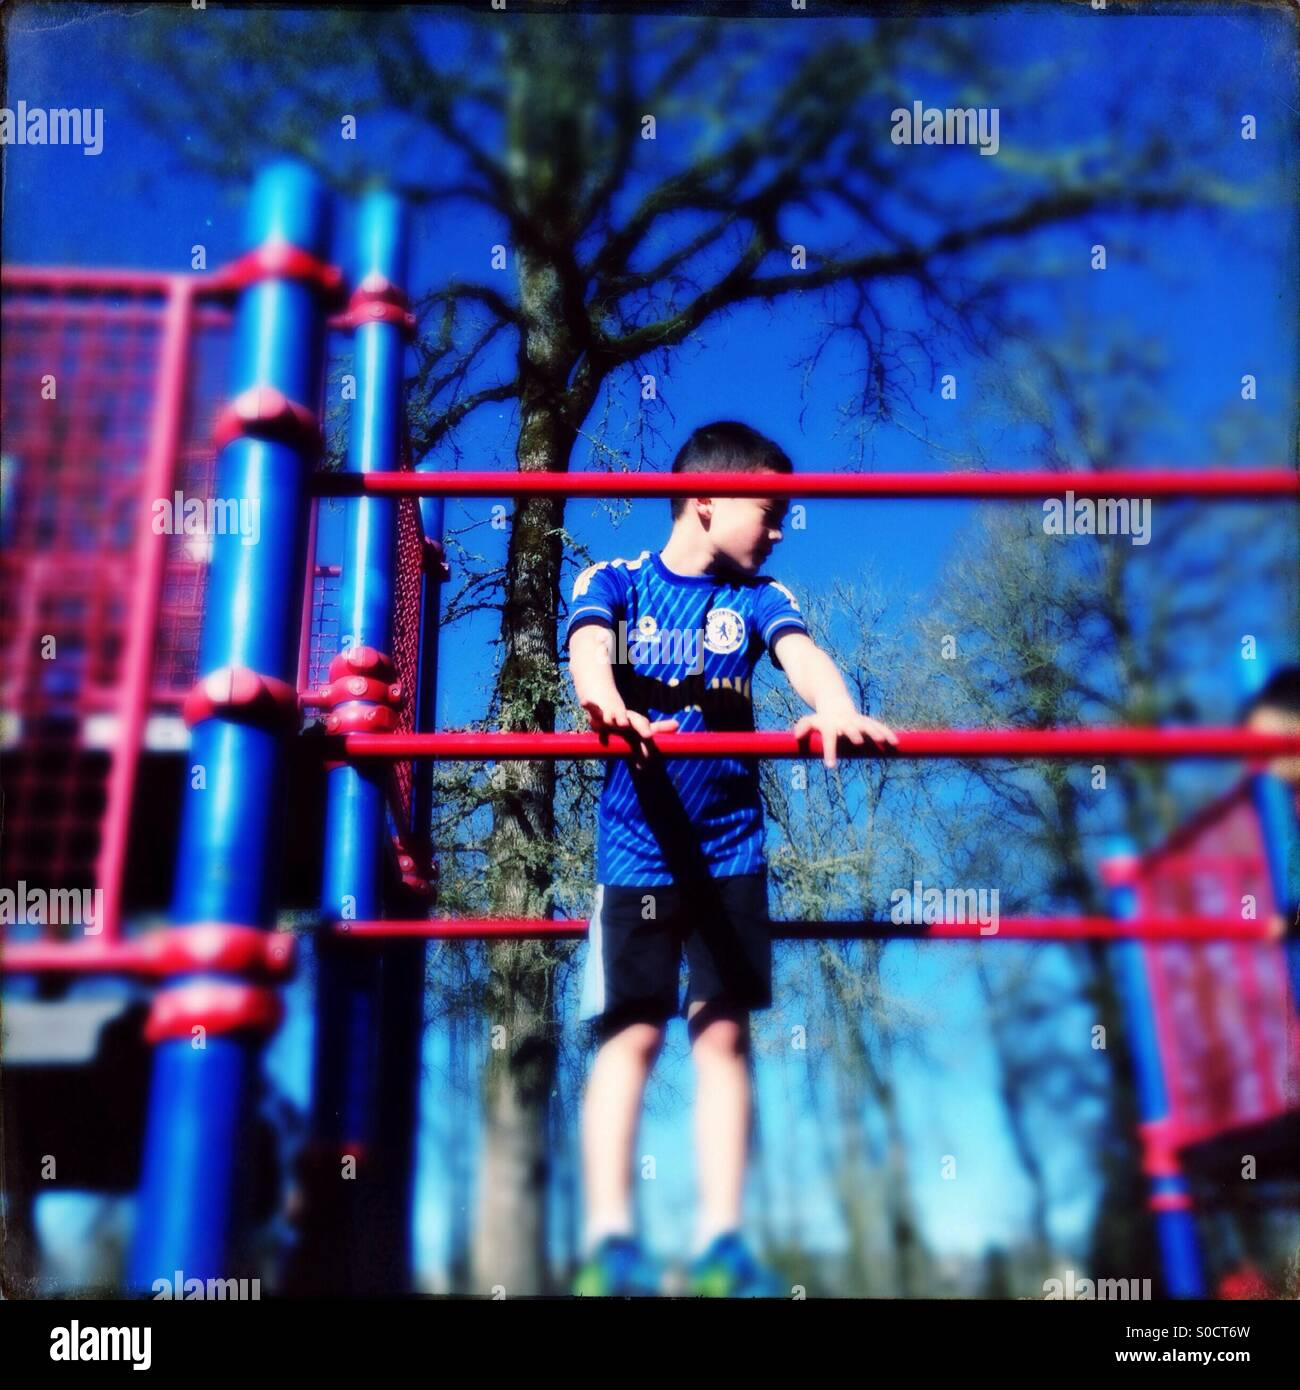 Boy on playground play structure - Stock Image